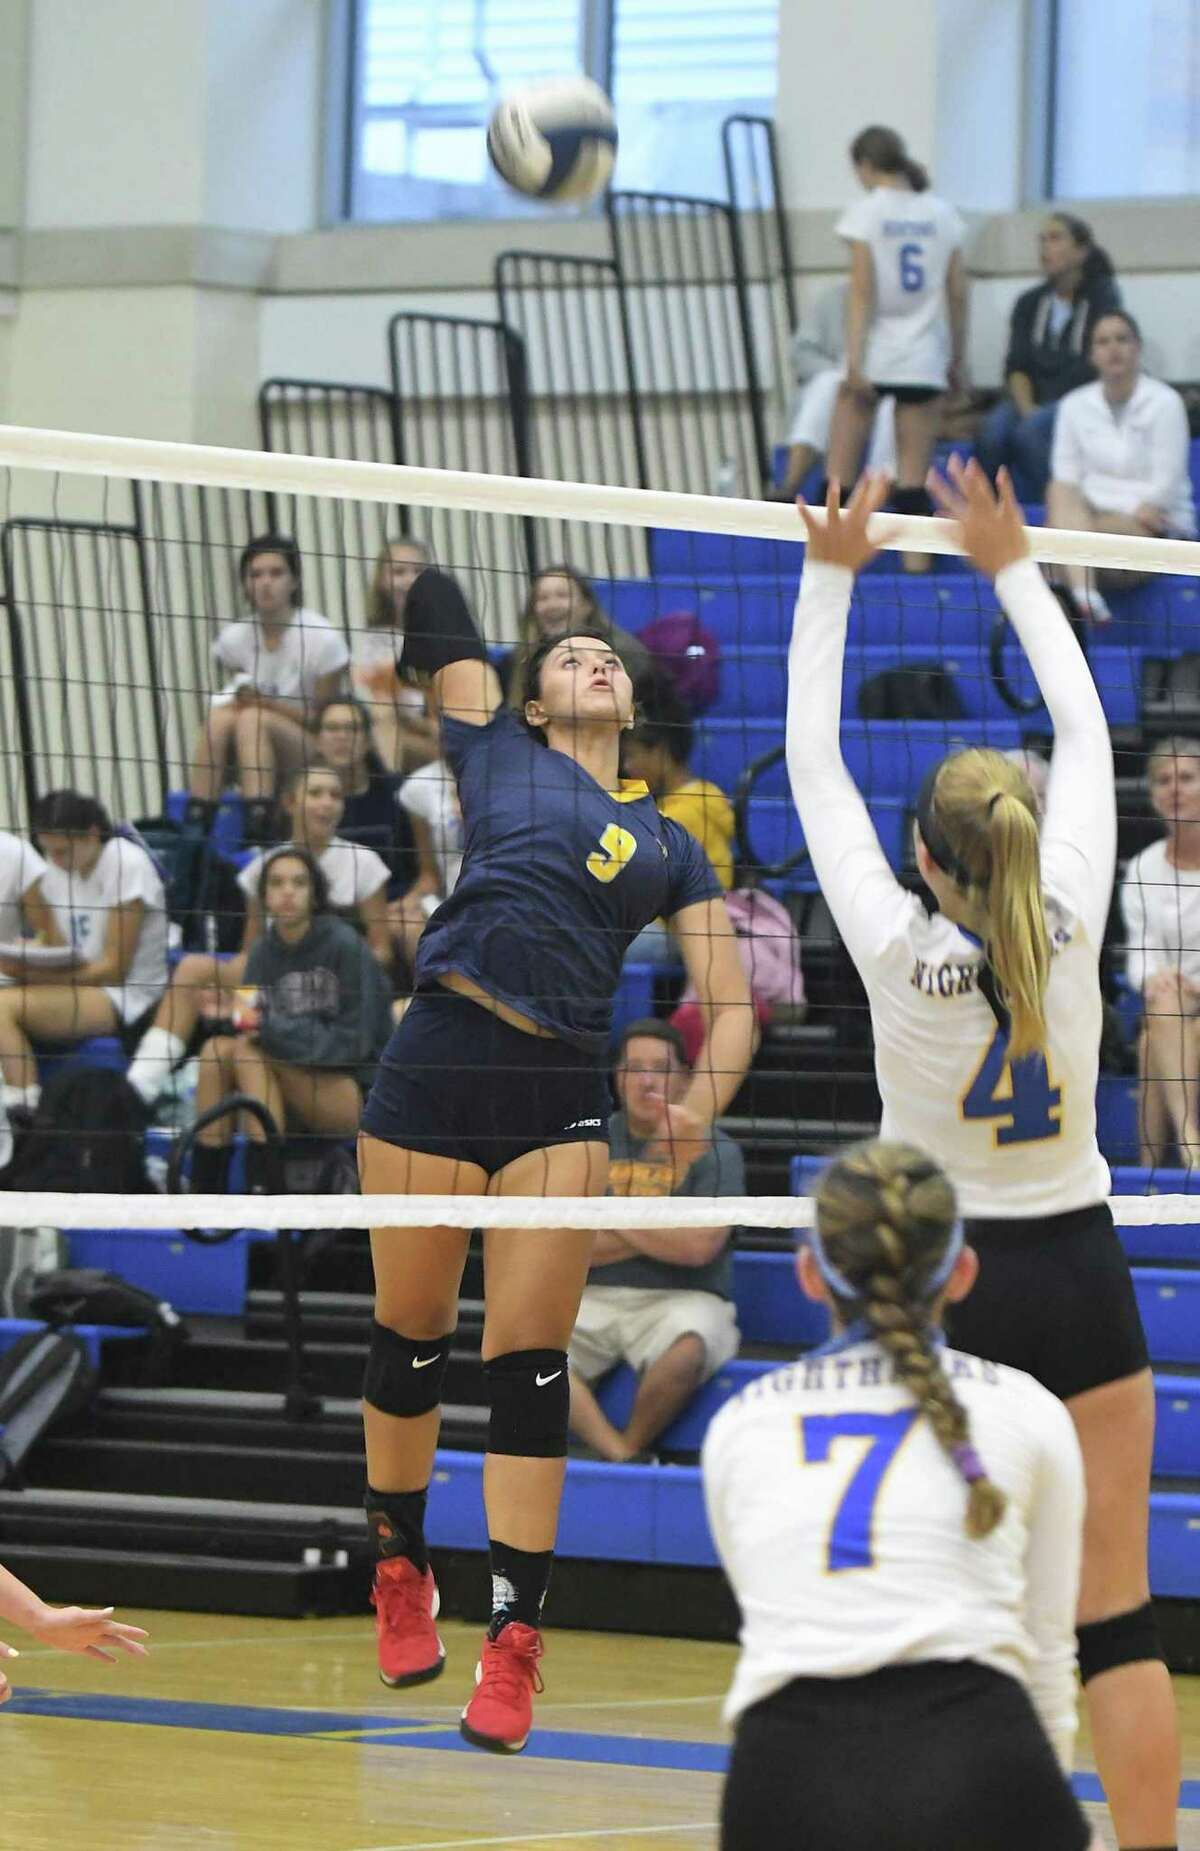 Woodstock Academy's Paula Hernandez (9) during the Woodstock Academy at Newtown High School girls volleyball game, Sept. 17, 2018.